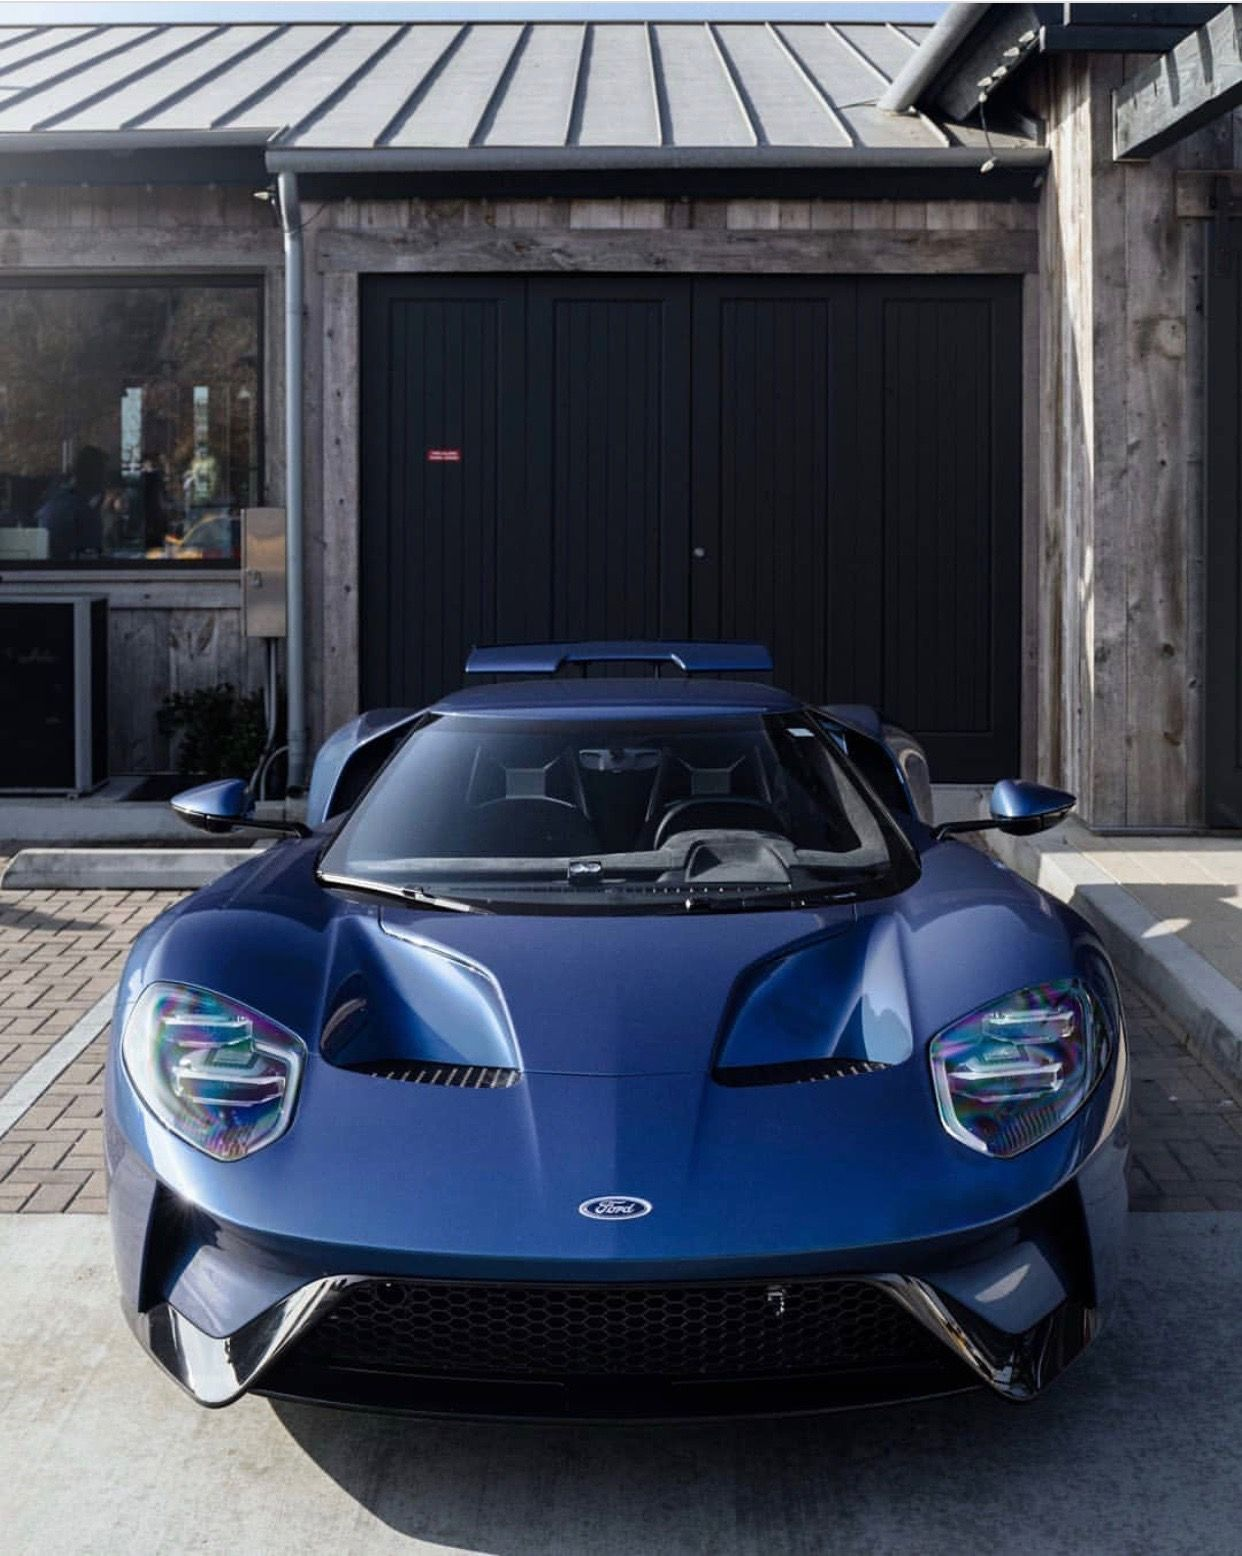 Ford Gt Painted In Liquid Blue Photo Taken By Theonetruemo On Instagram